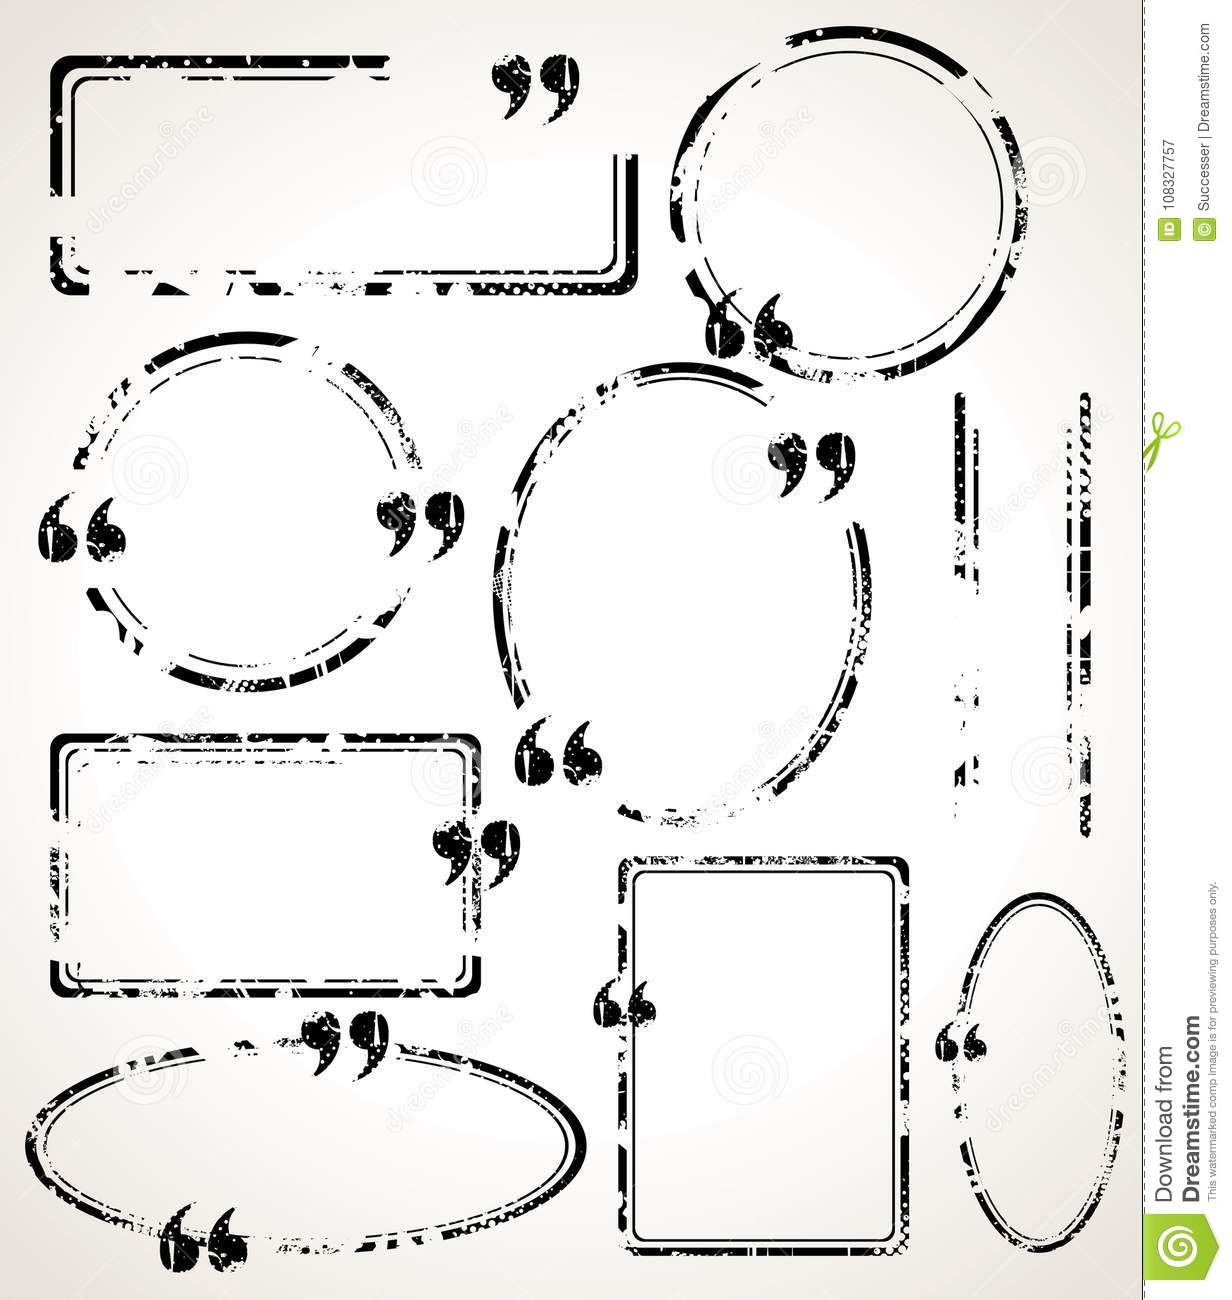 Quote Frames.Doodle Style Sketched Frames, Strokes Stock Vector ...